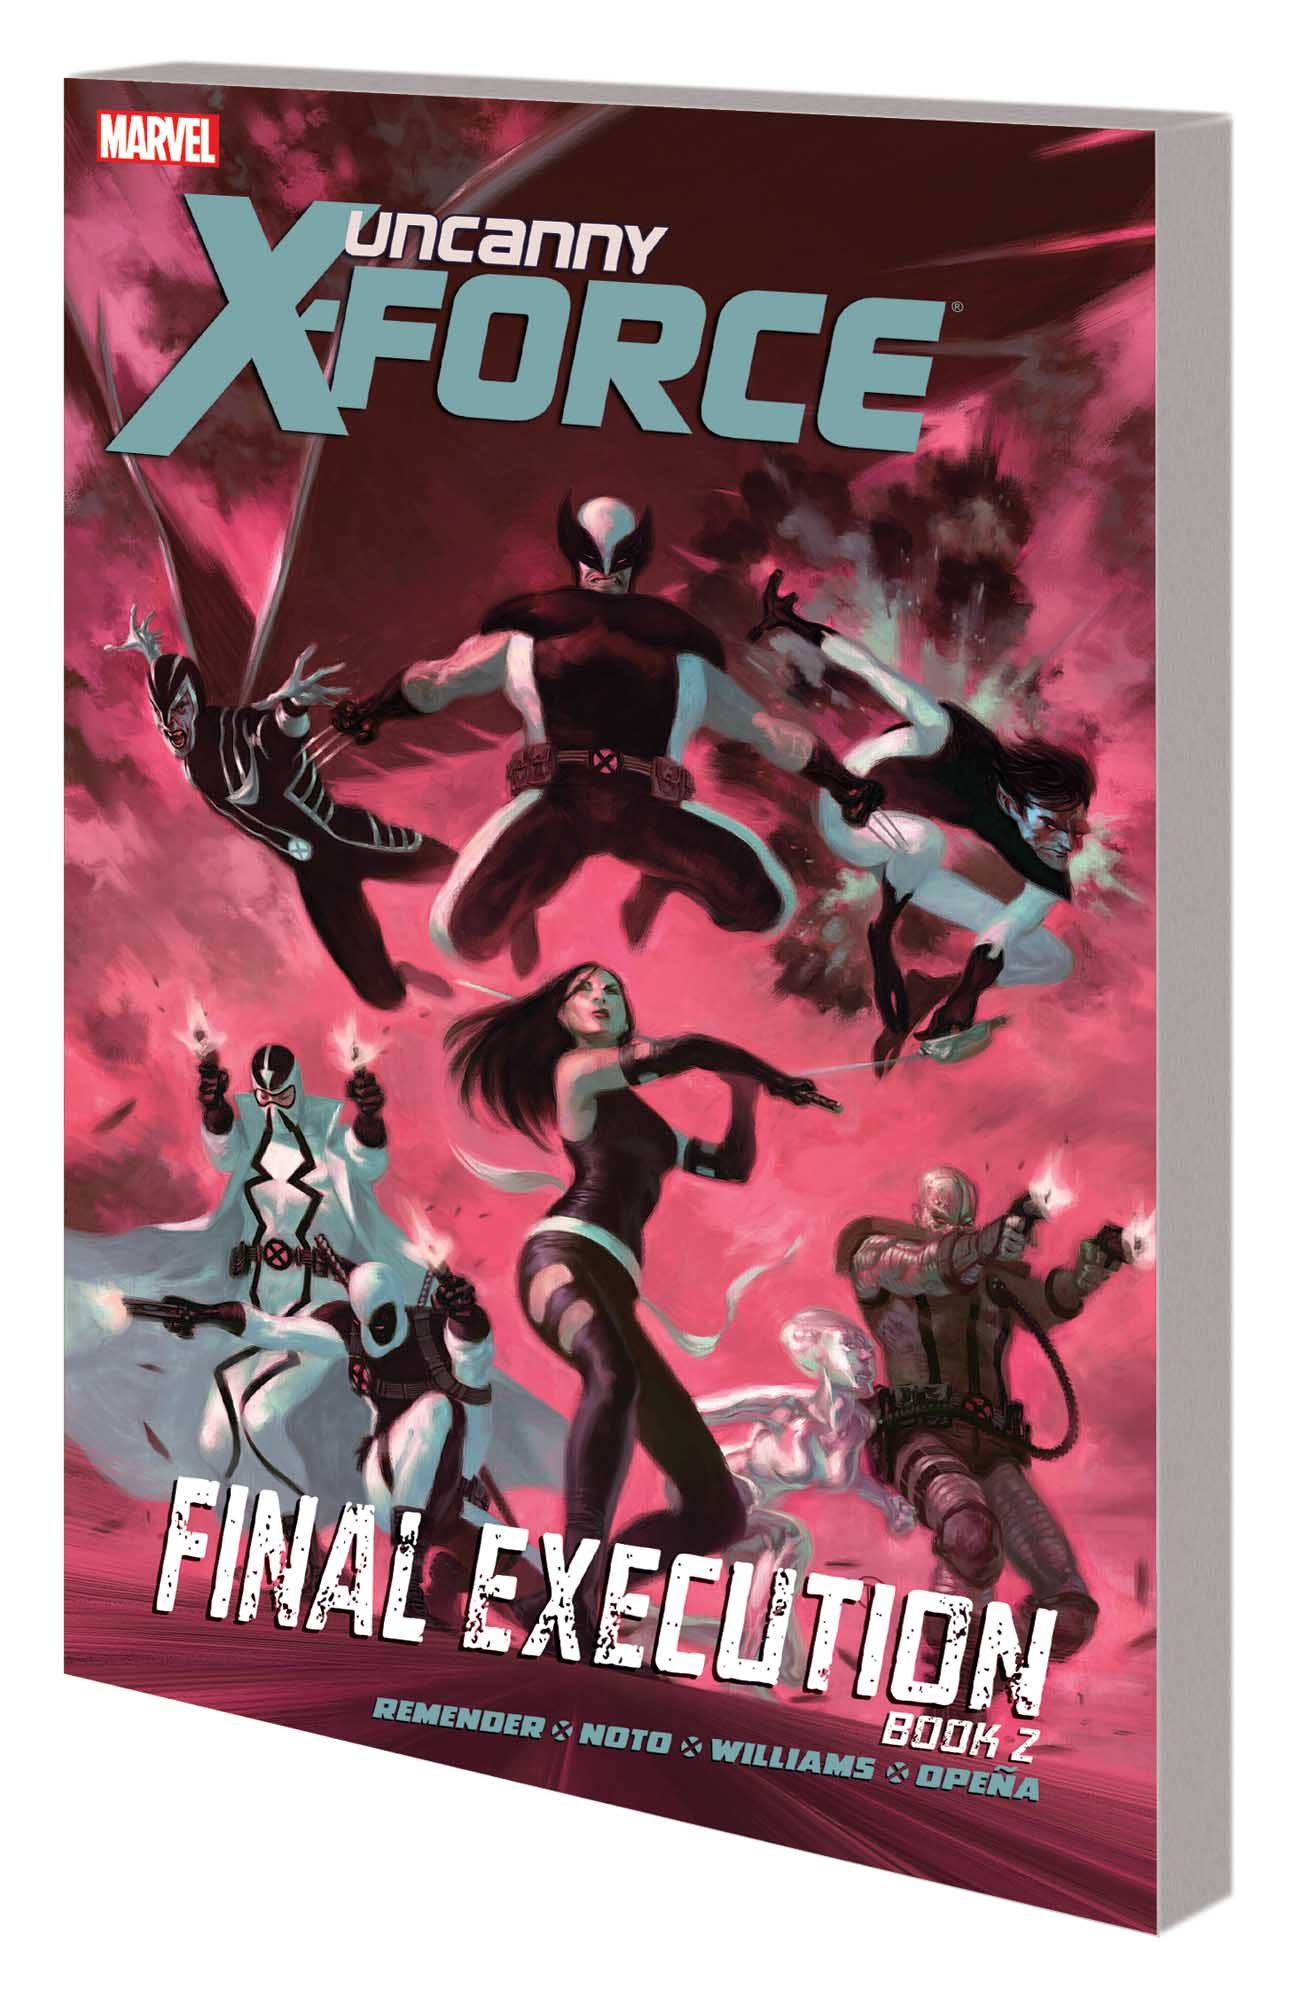 UNCANNY X-FORCE VOL. 7: FINAL EXECUTION BOOK 2 TPB (Trade Paperback)